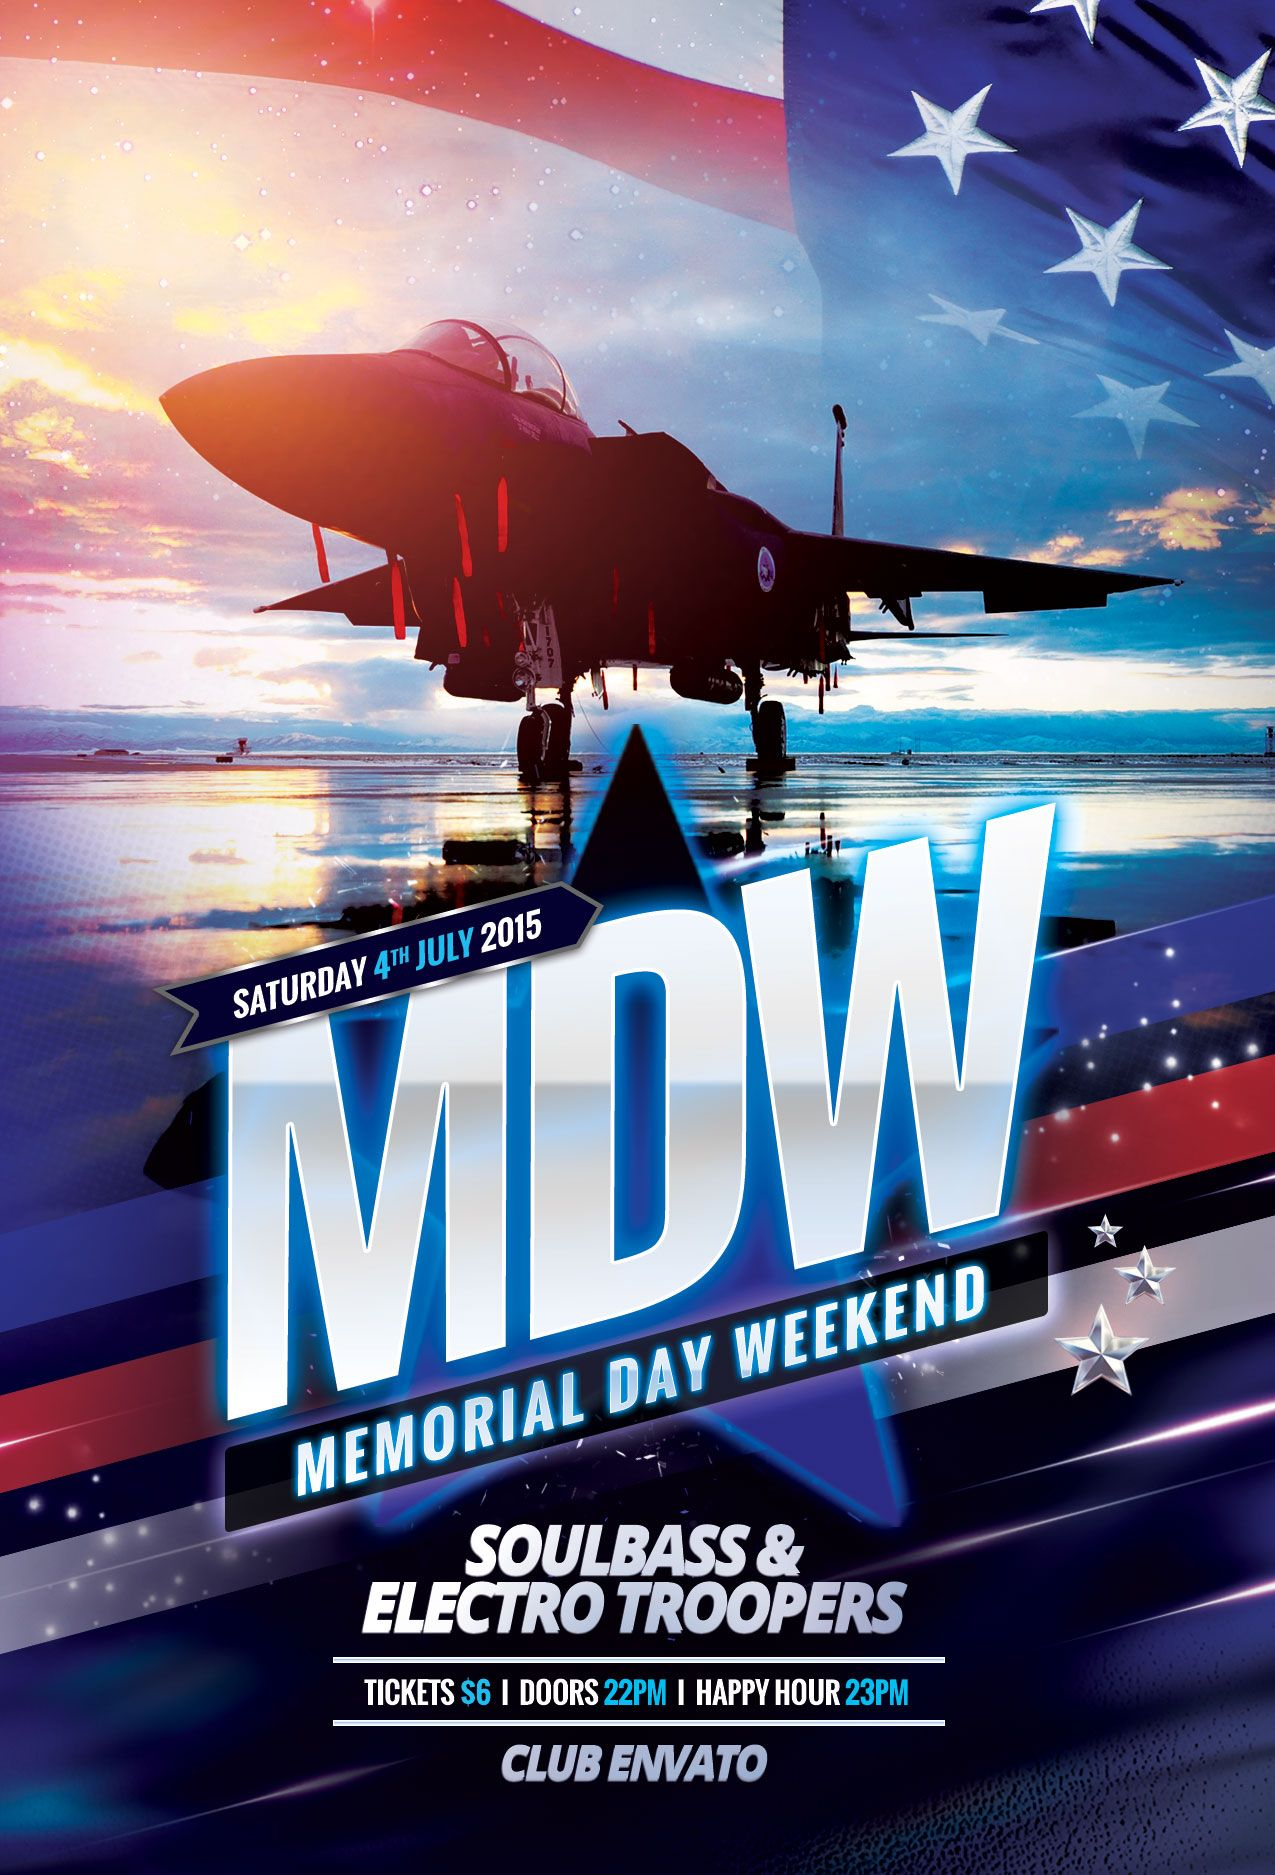 memorial day weekend flyer download psd file 6 party poster